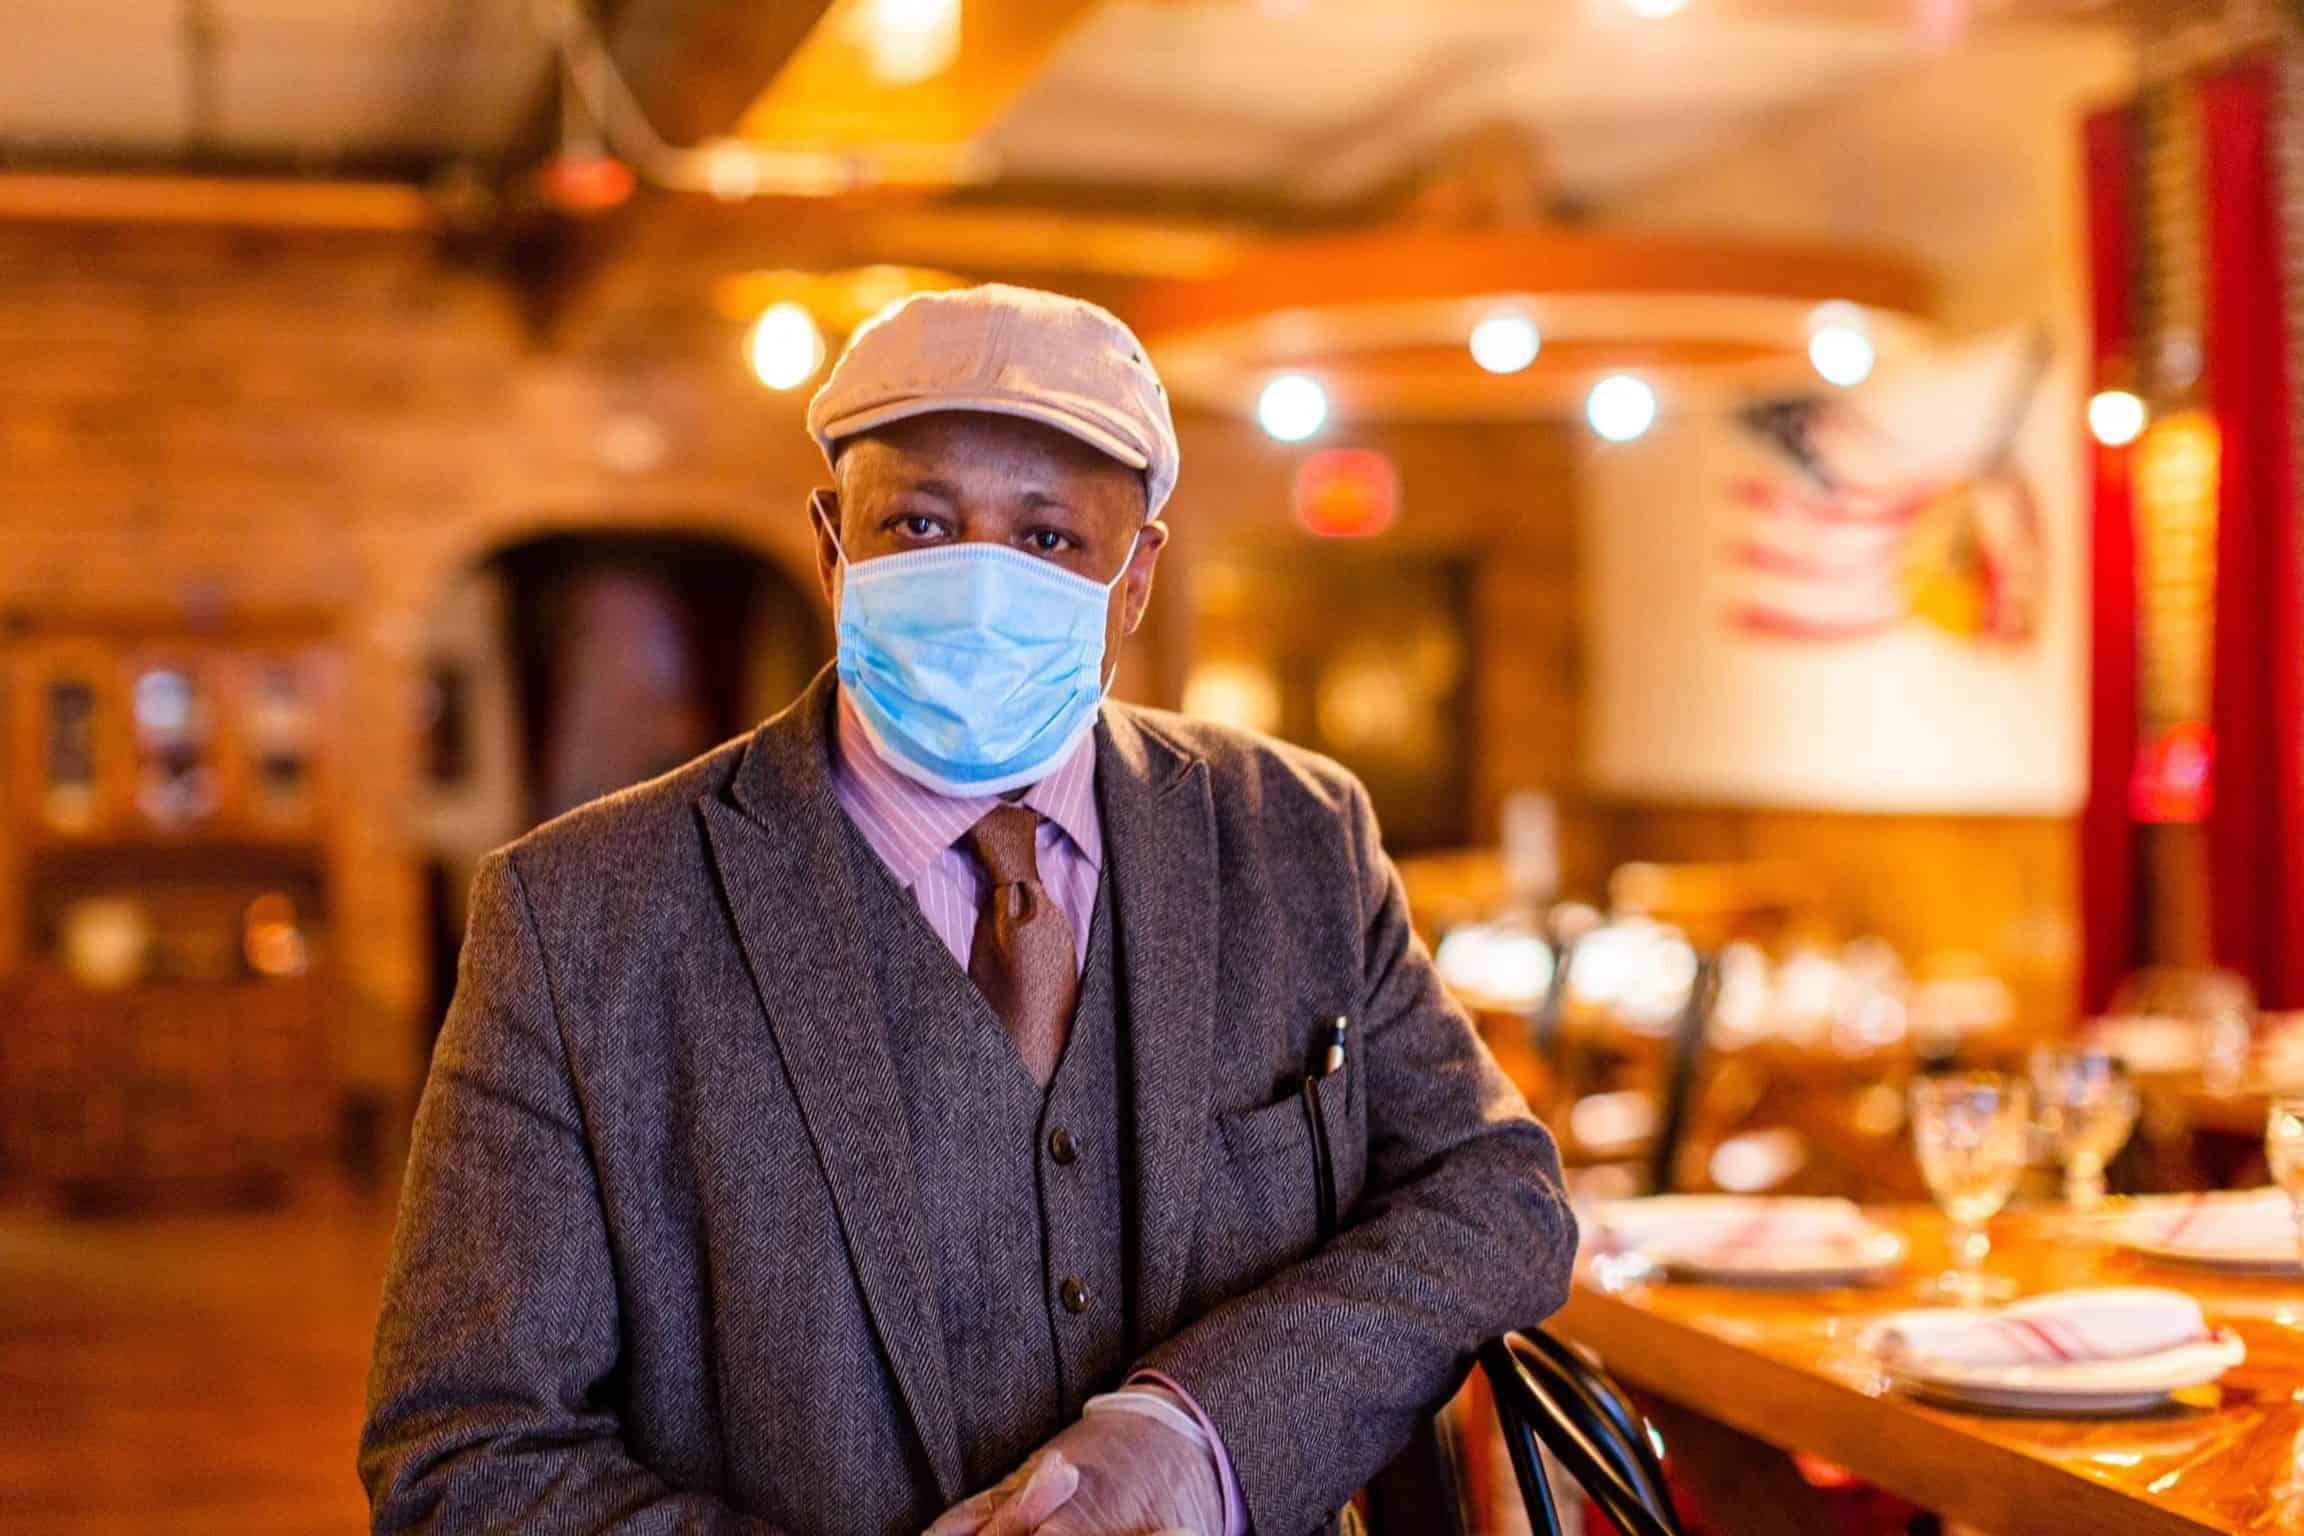 Life in the Time of the Coronavirus: Voices from Silver Spring—Zed MeKonnen, Zed's Café, Silver Strings